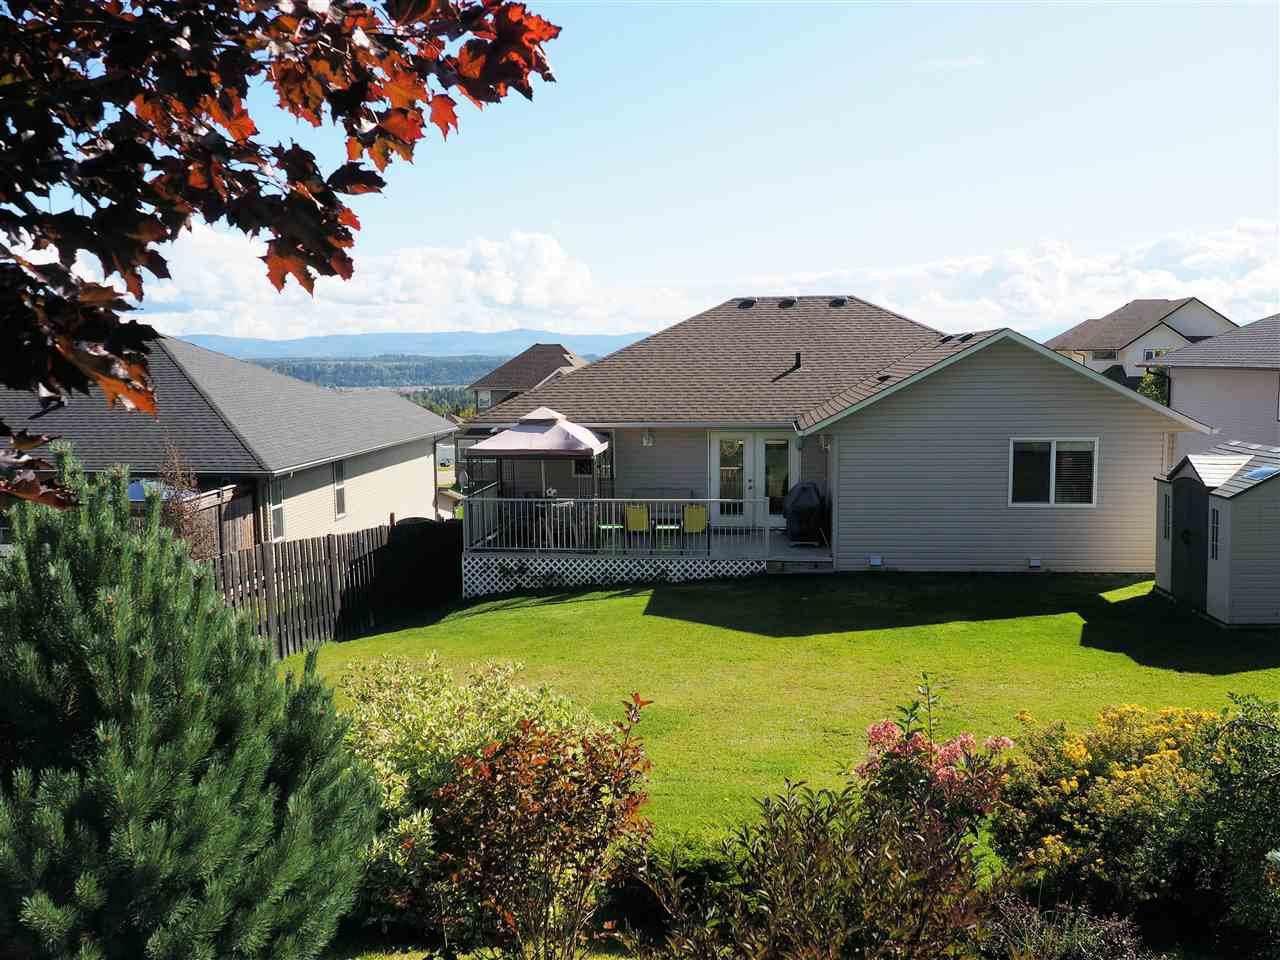 Photo 4: Photos: 7627 GRAYSHELL Road in Prince George: St. Lawrence Heights House for sale (PG City South (Zone 74))  : MLS®# R2438648